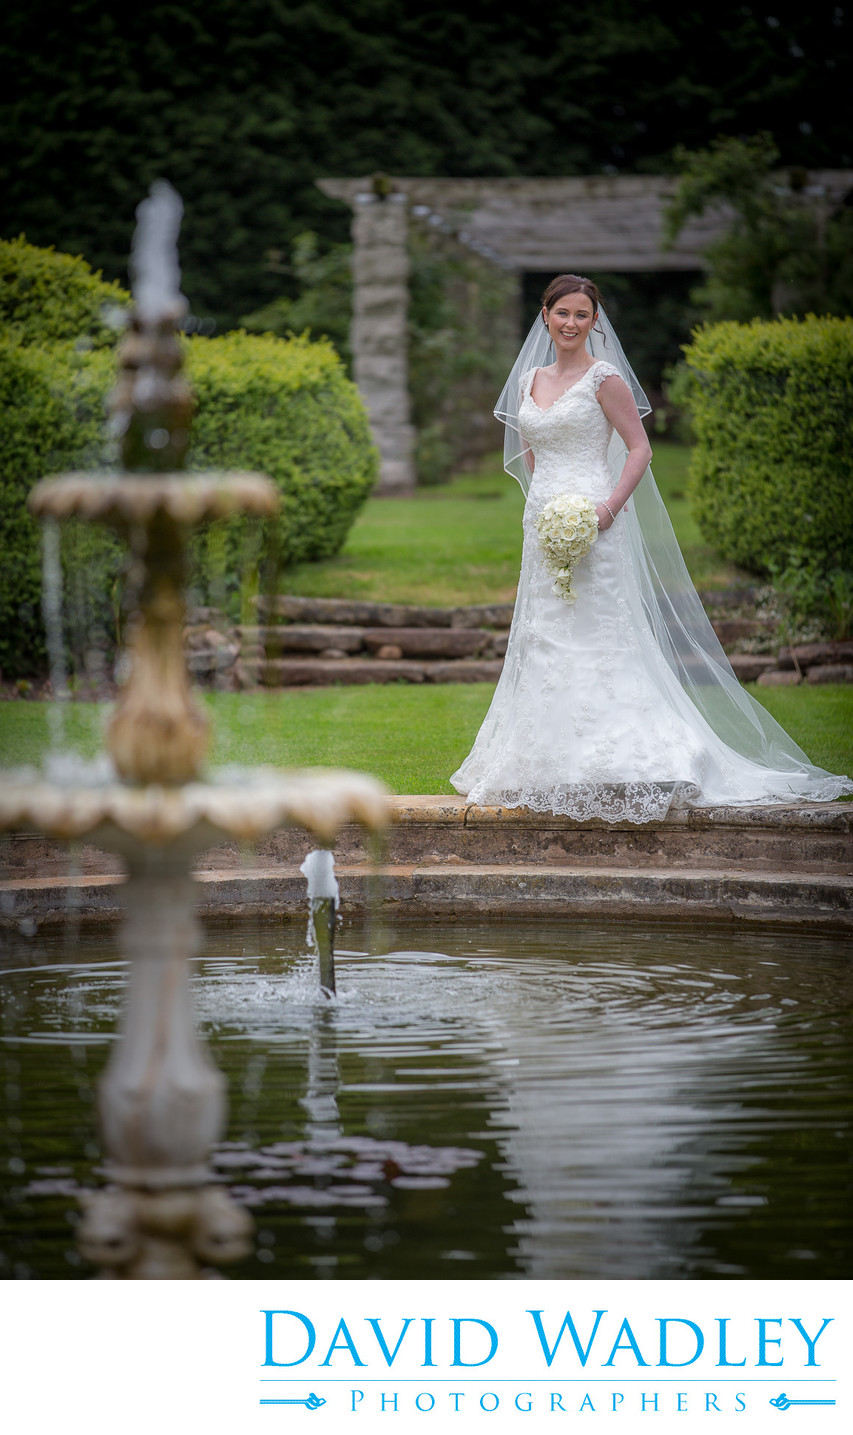 Swinfen Hall Hotel gardens on wedding day.